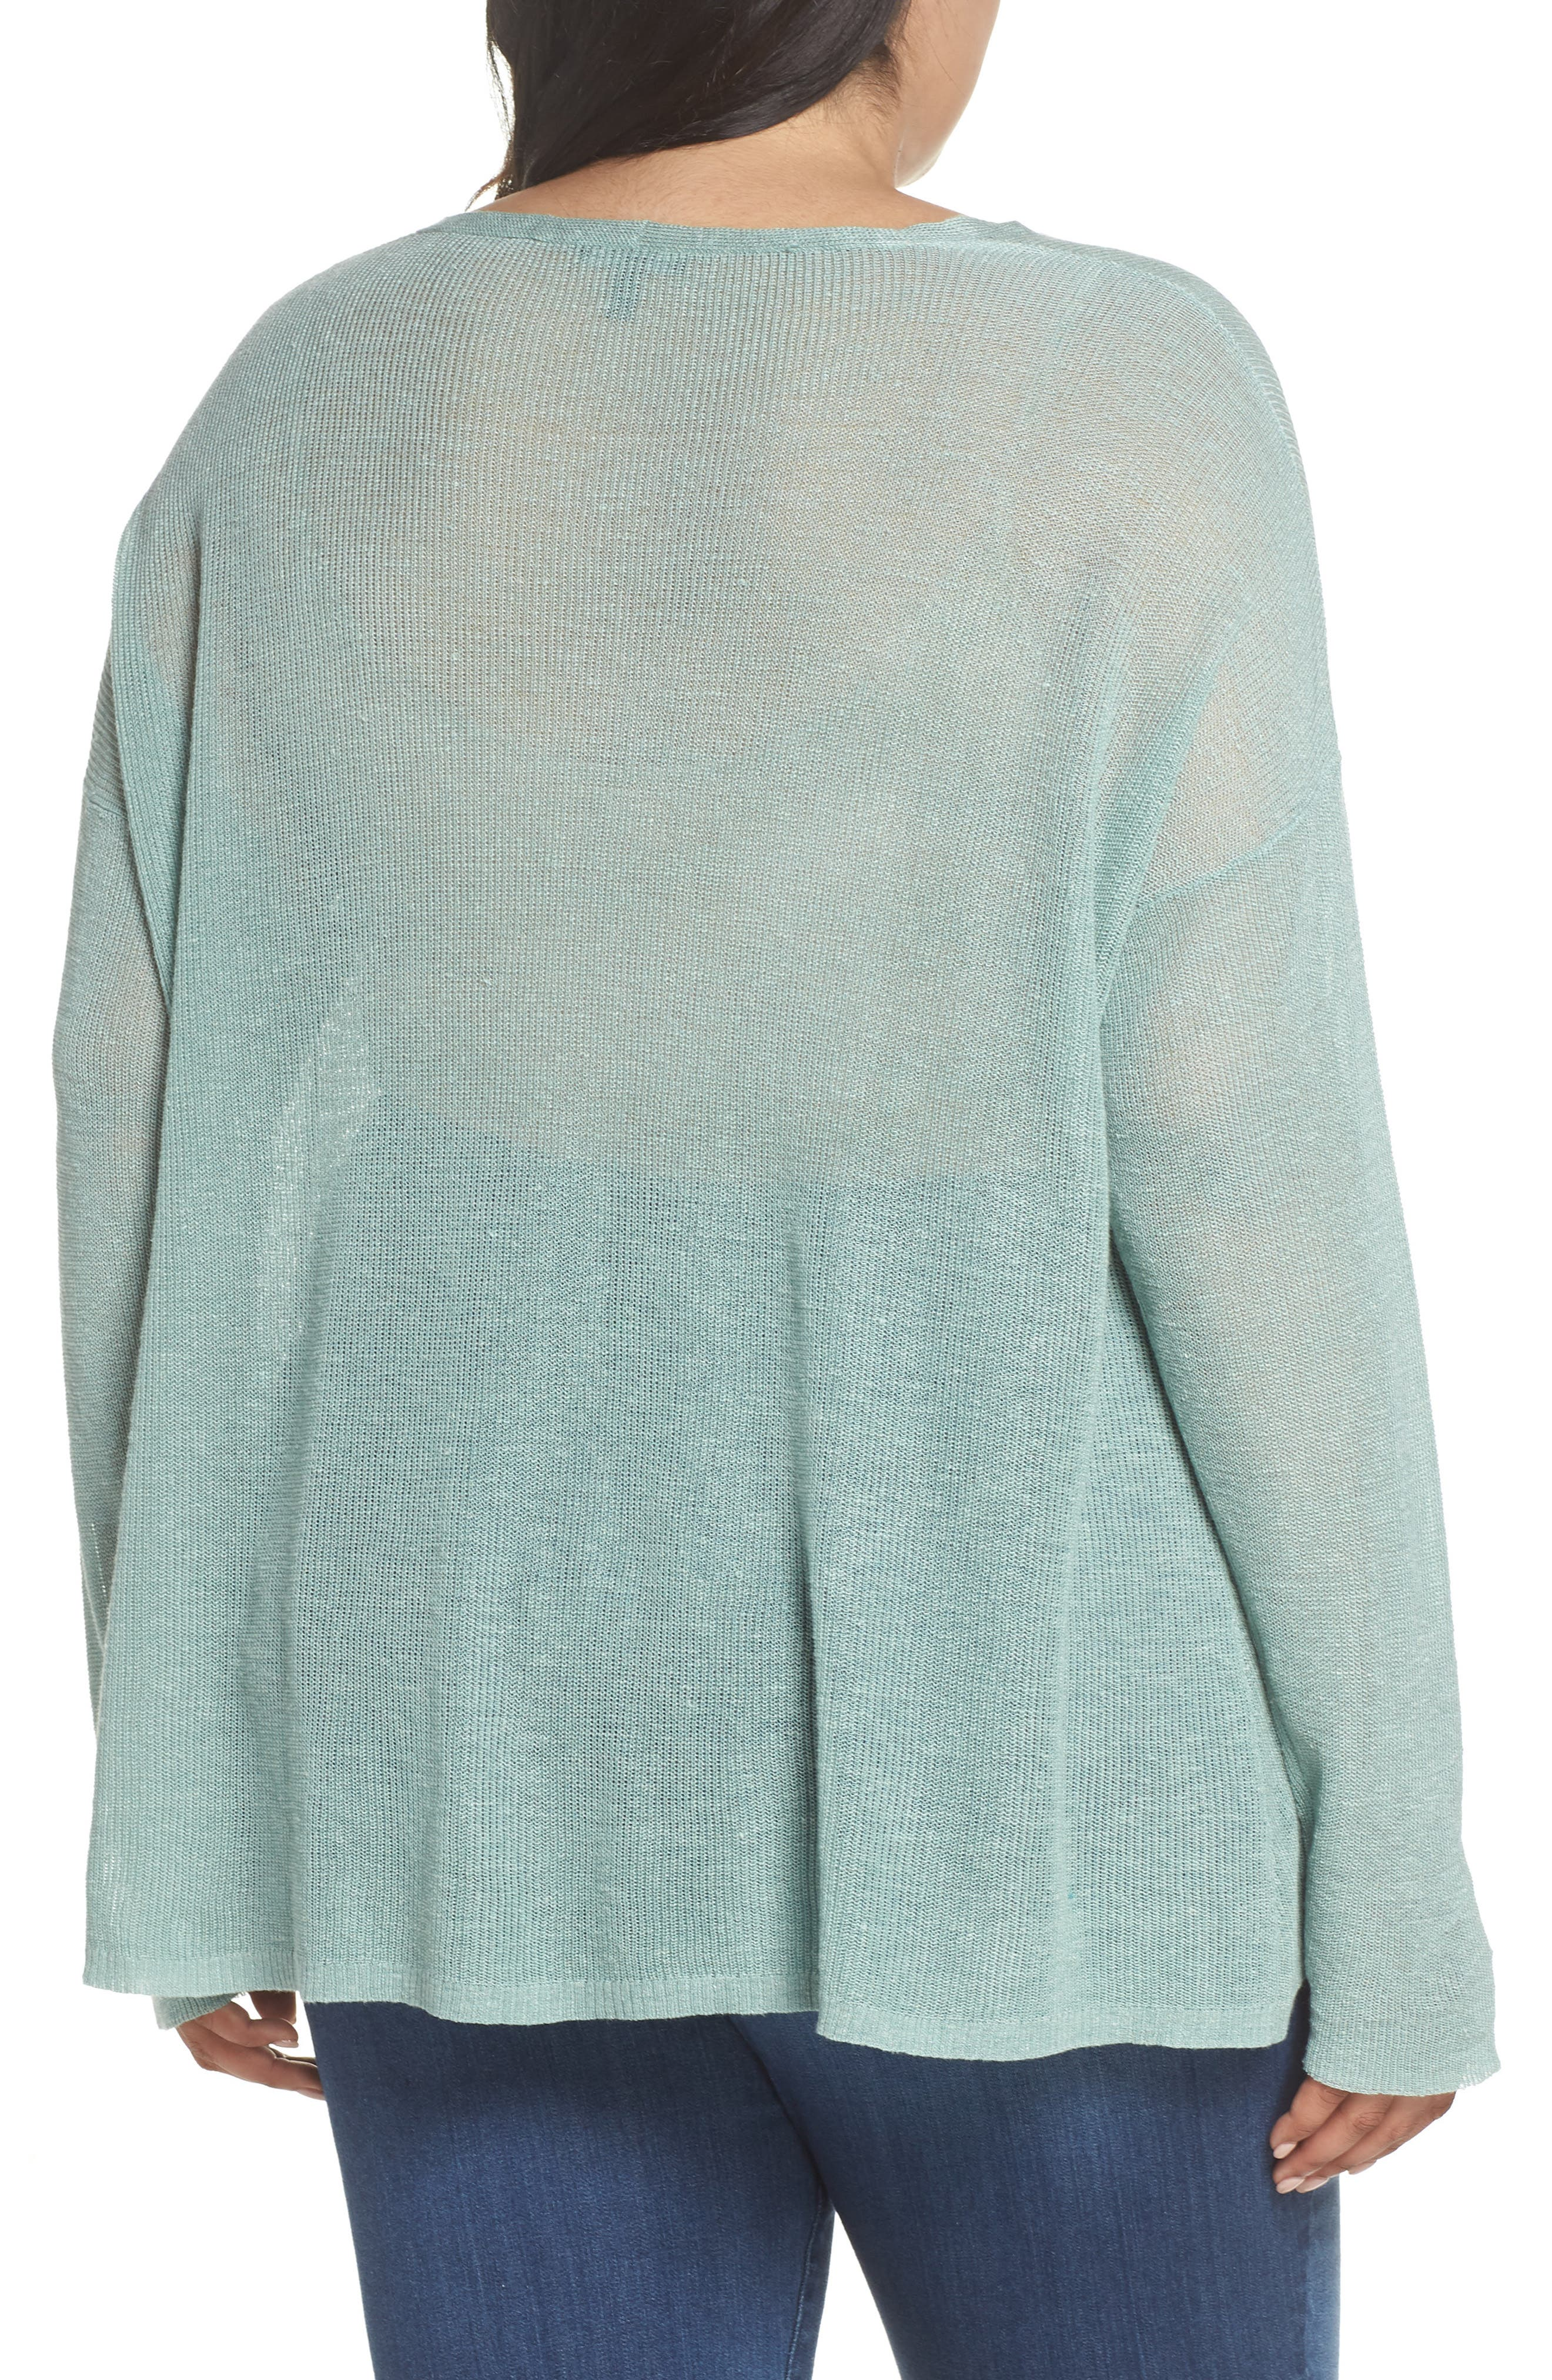 Boxy Organic Linen Blend Sweater,                             Alternate thumbnail 2, color,                             Elm